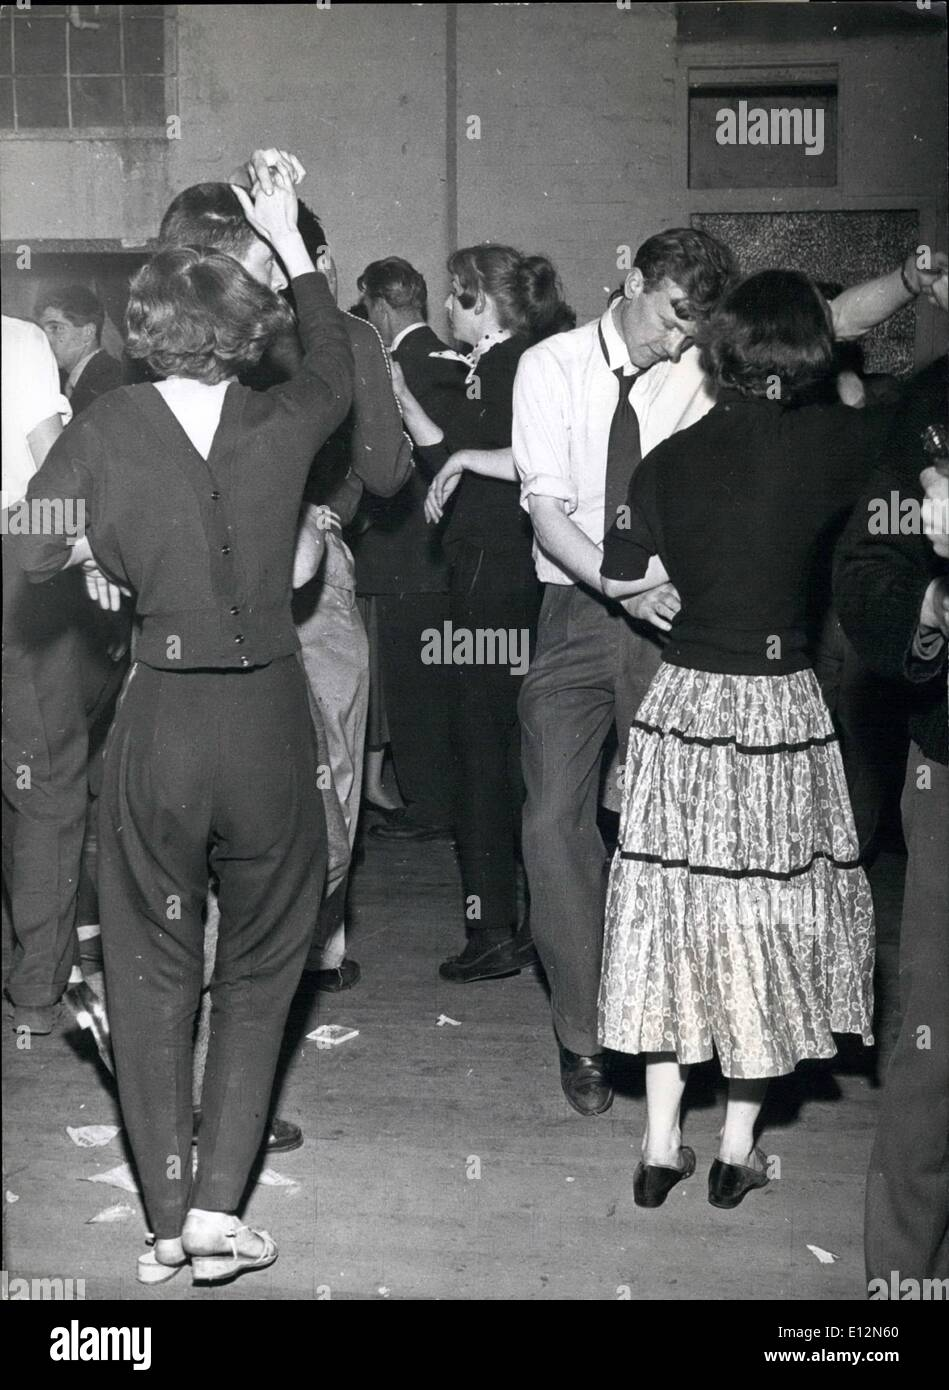 Feb. 24, 2012 - All night Jazz sessions in London : Some in Jeans, some in skirts: some wearing shoes, and others bare footed but all dancing to the Super heated music of Cy Laurie. - Stock Image